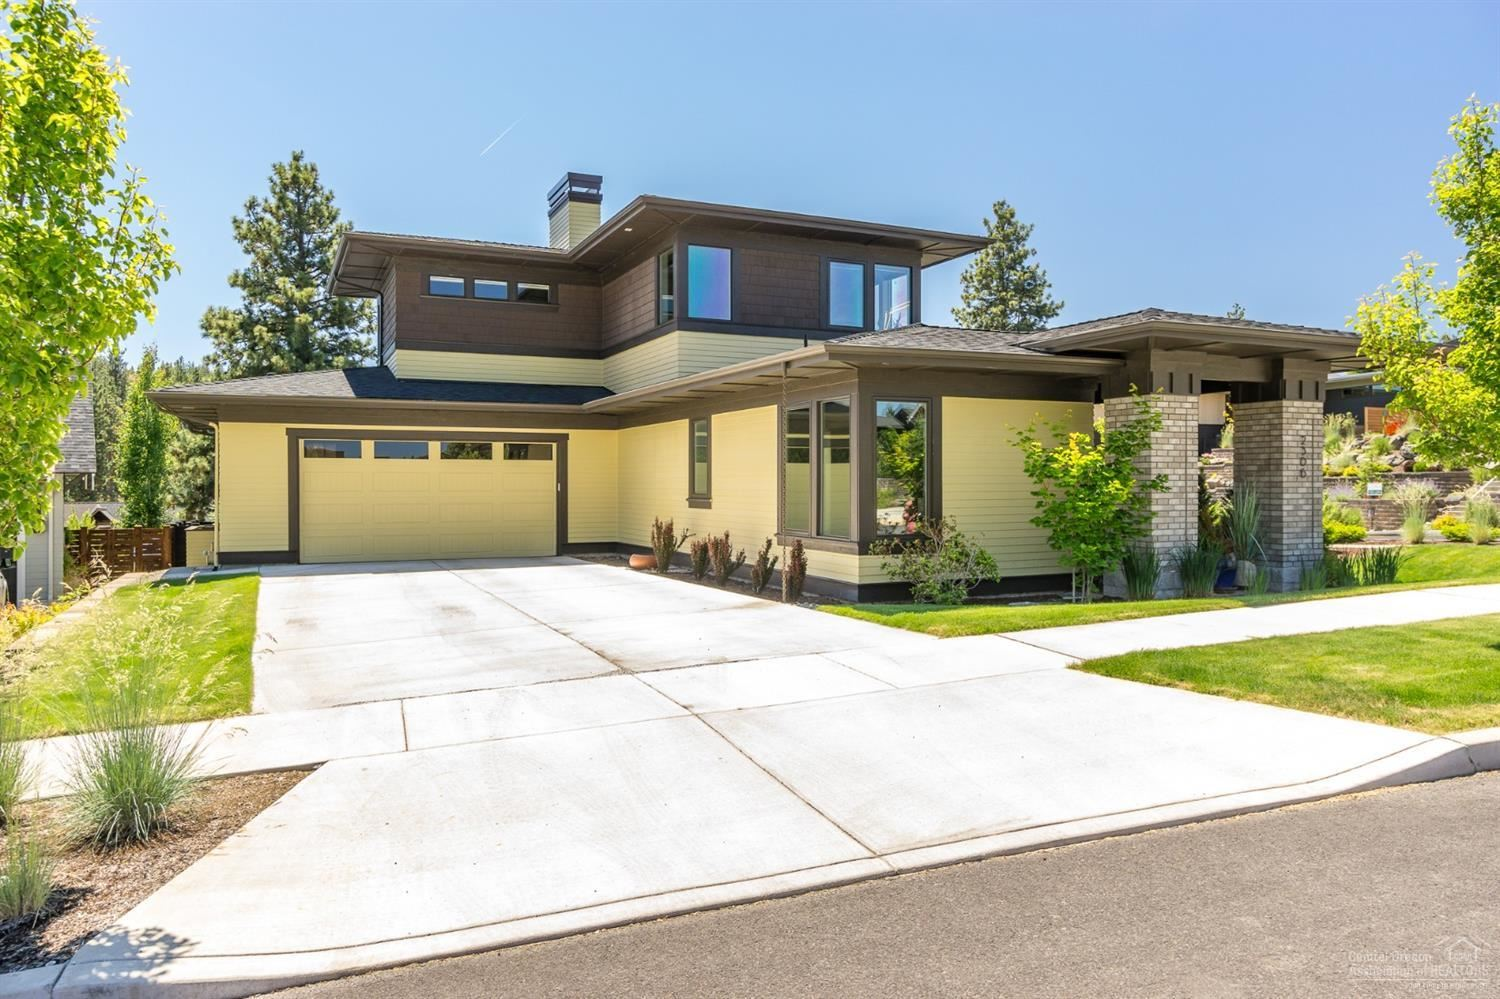 Photo for 2306 NW Floyd Lane, Bend, OR 97703 (MLS # 201905474)